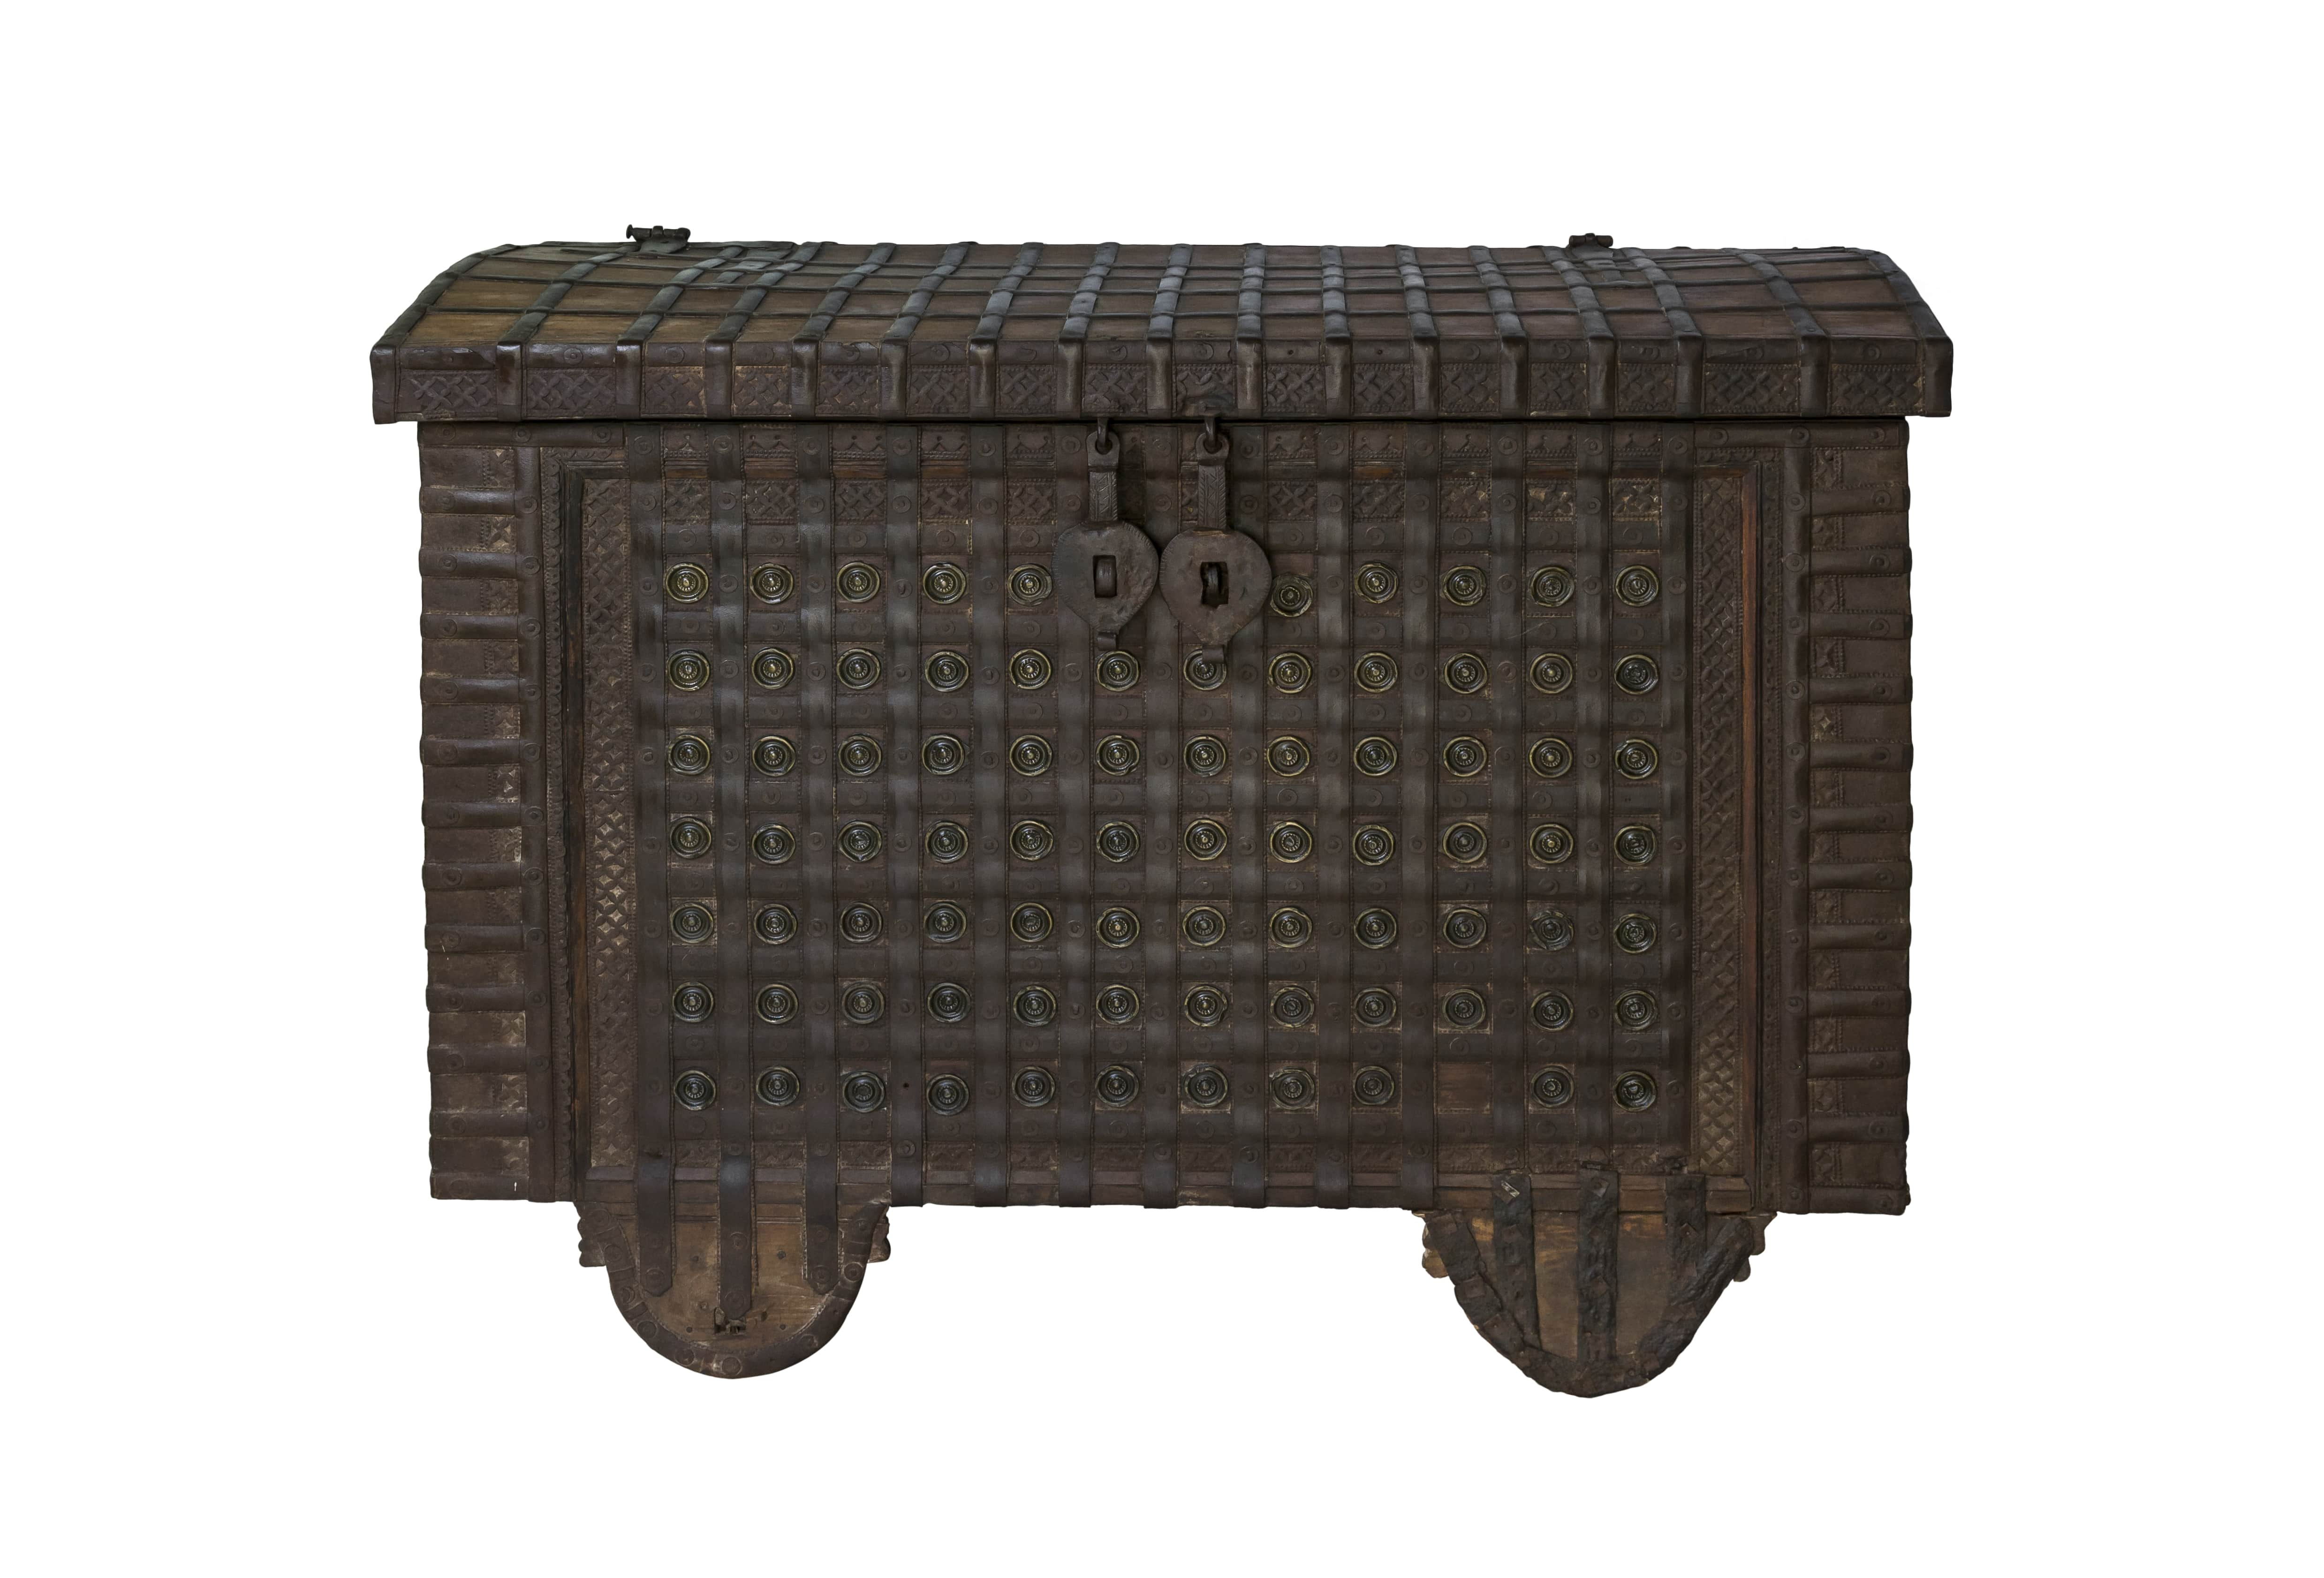 Indian trunk in wood and metal